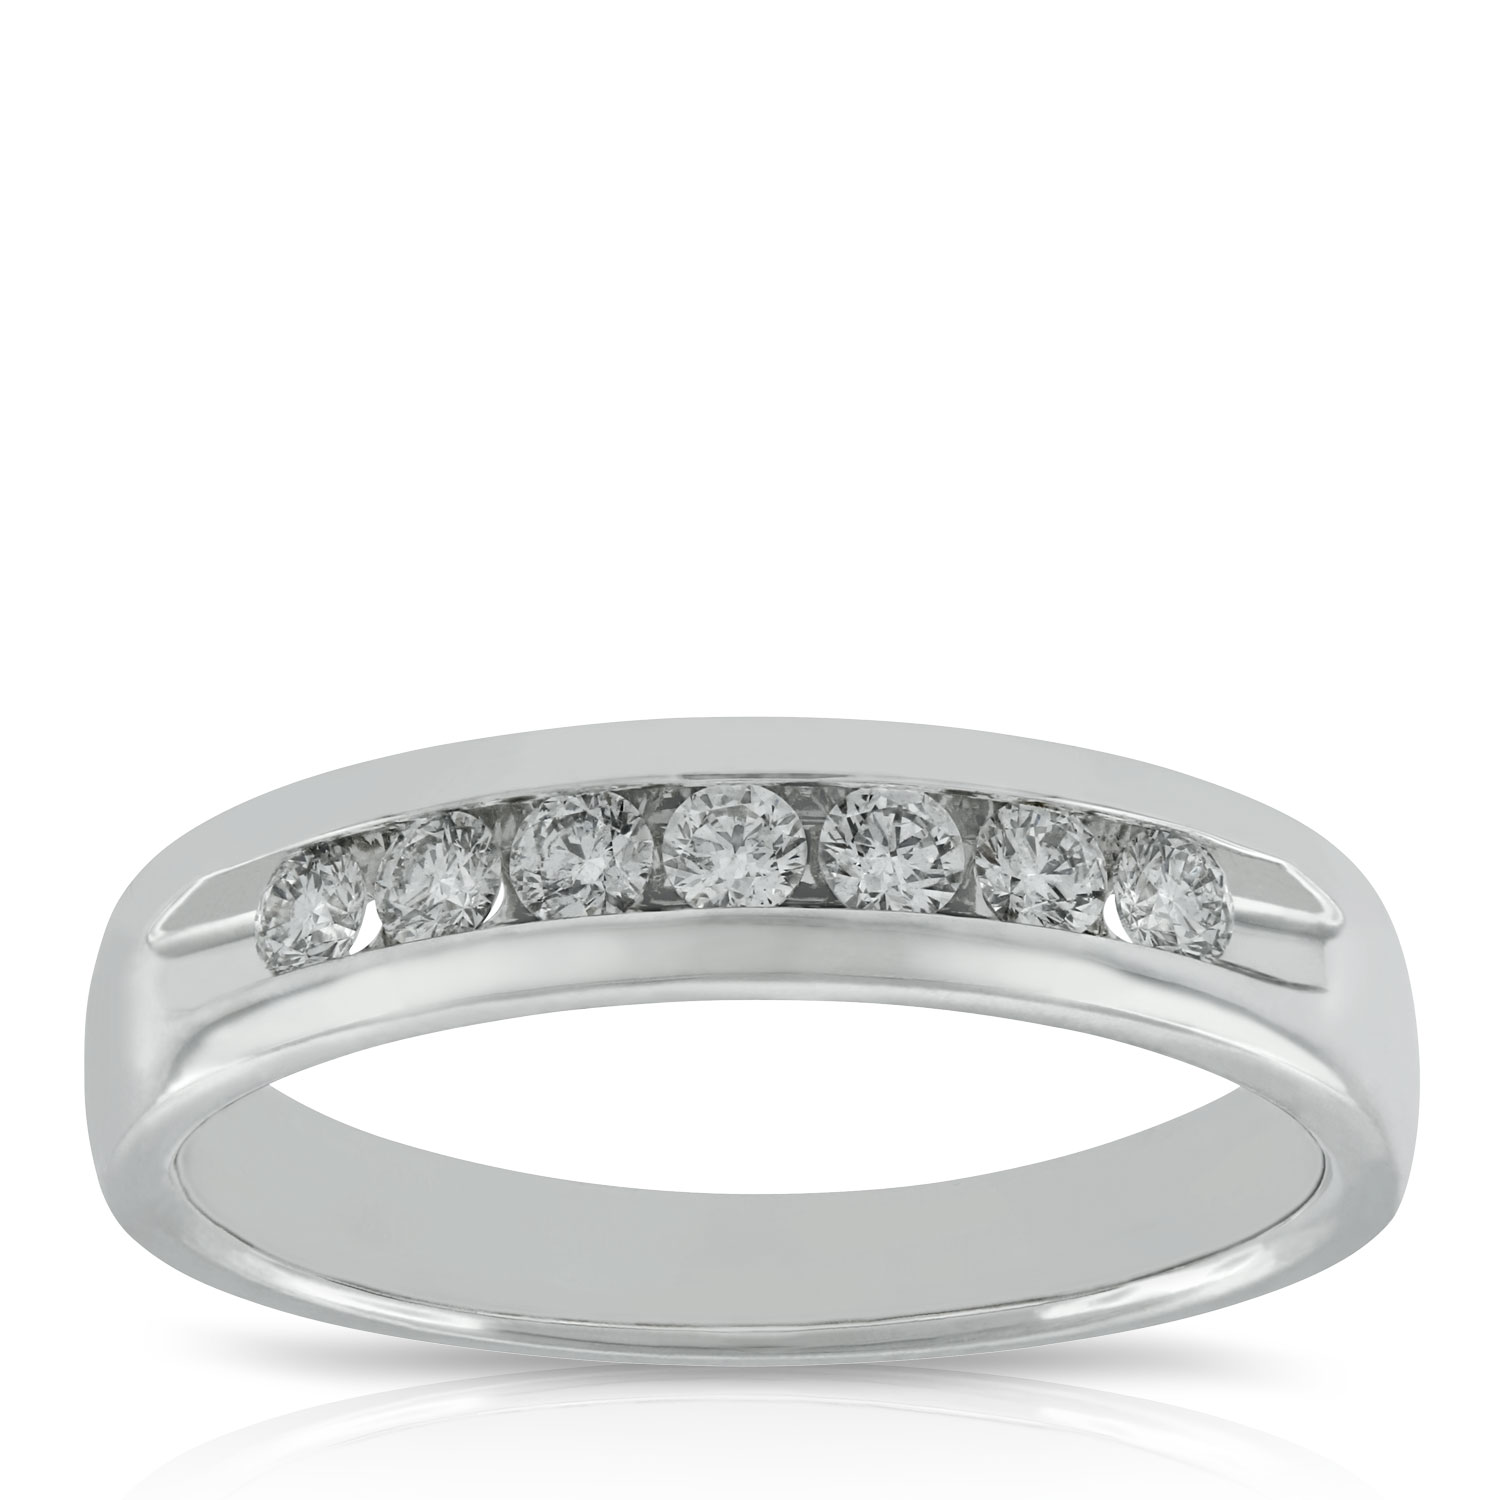 sholdt ring st set jewelers channel engagement greenwich diamond